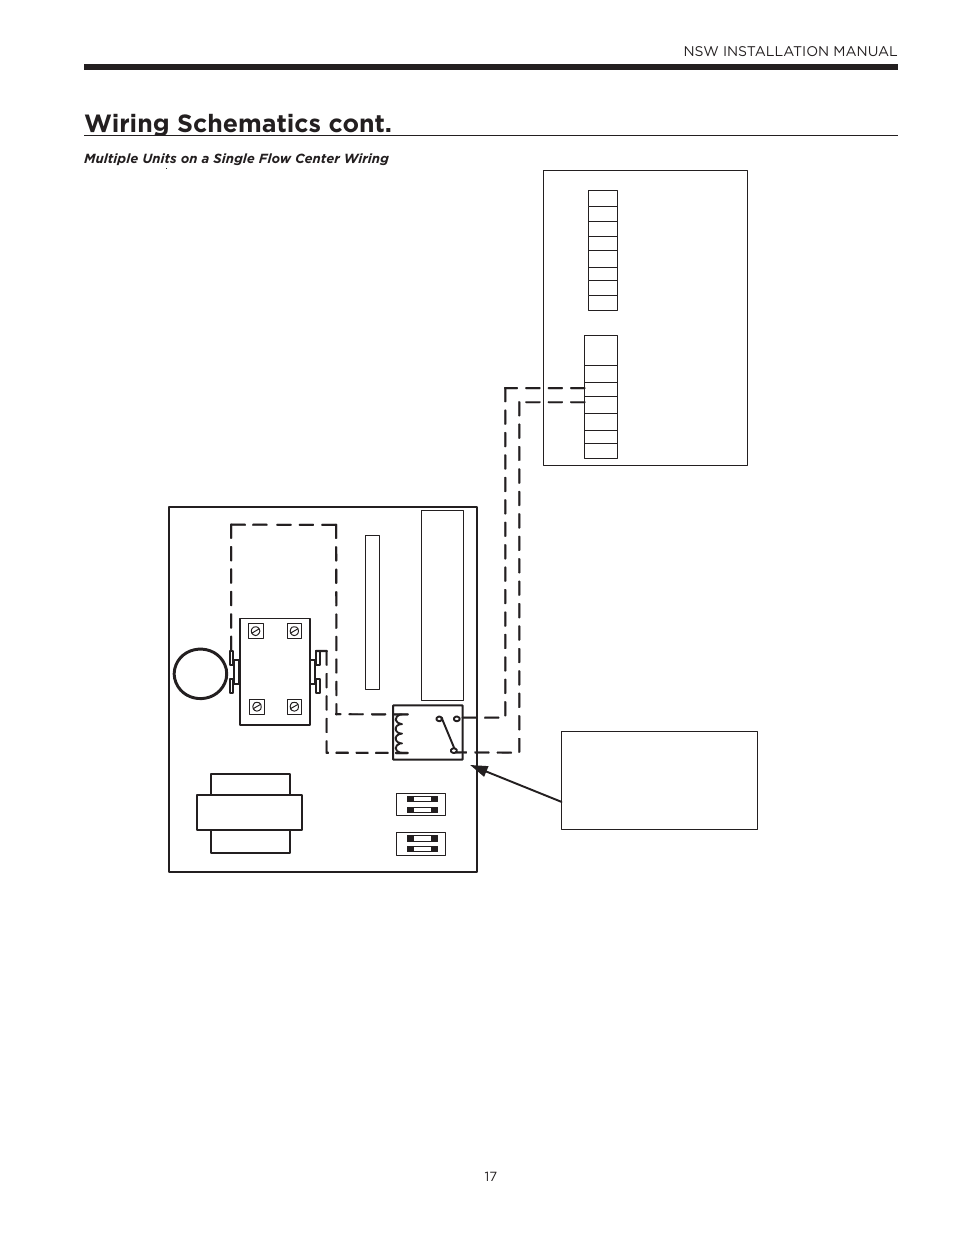 hight resolution of wiring schematics cont nsw installation manual waterfurnace water furnace wiring diagram